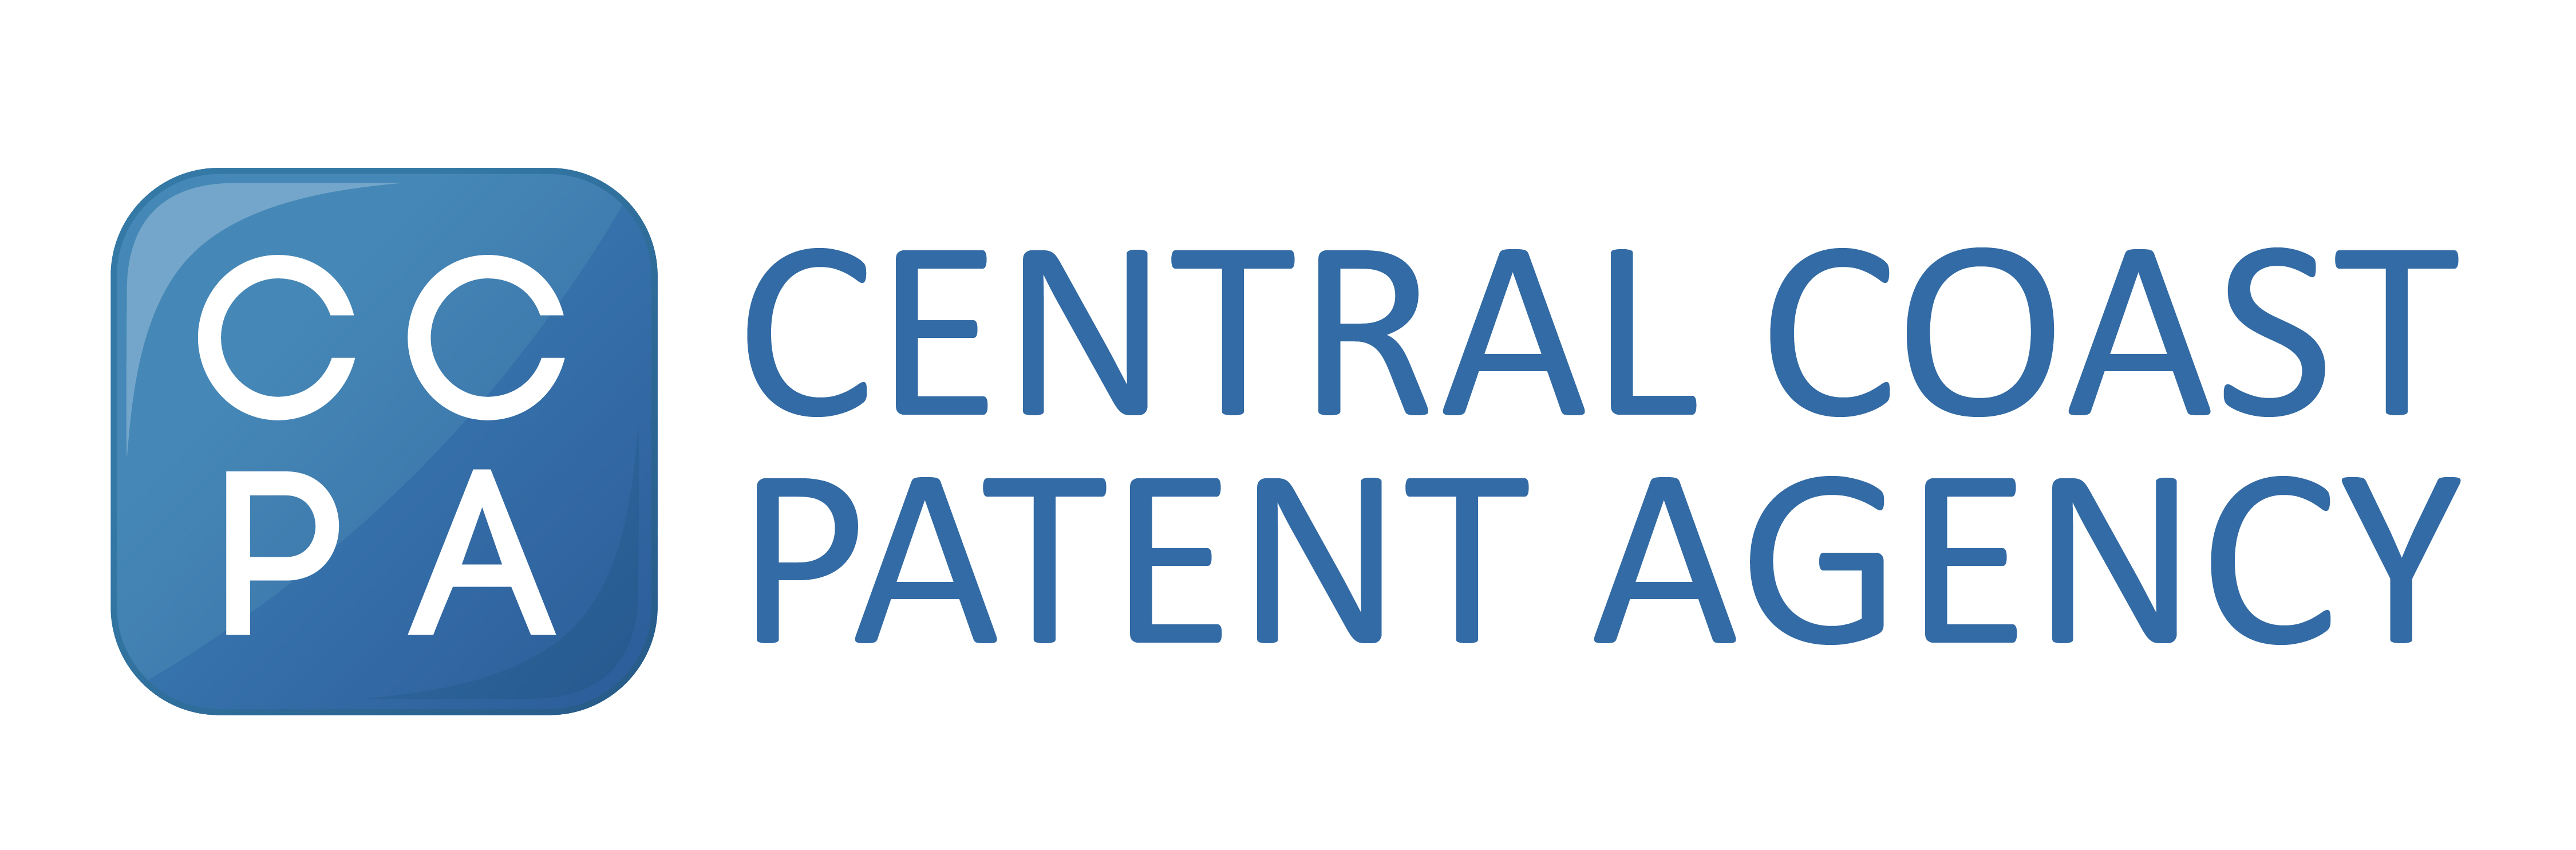 Central Coast Patent Agency - Logo-05